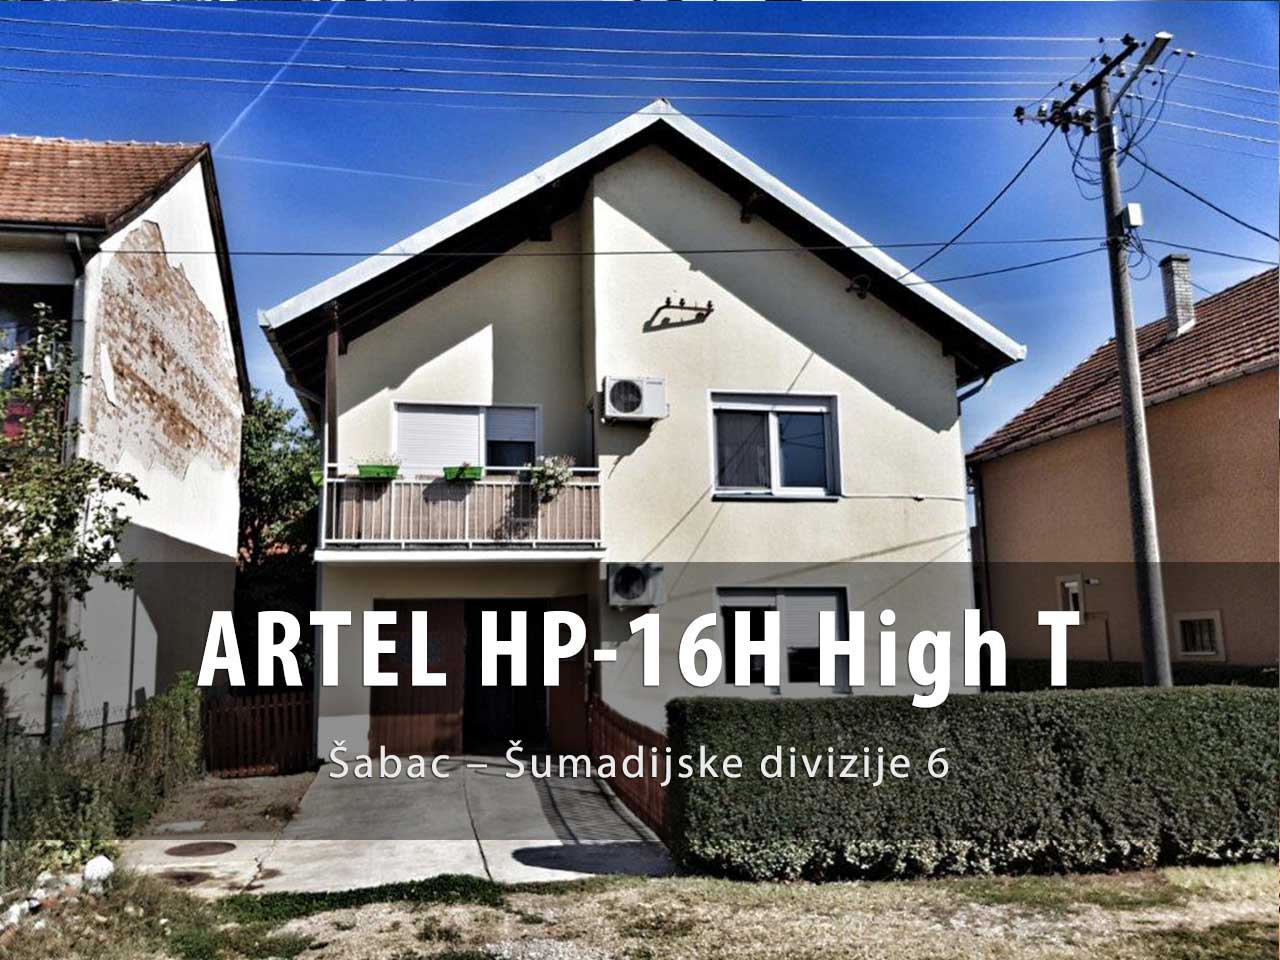 ARTEL-HP-16H-High-T-Sabac